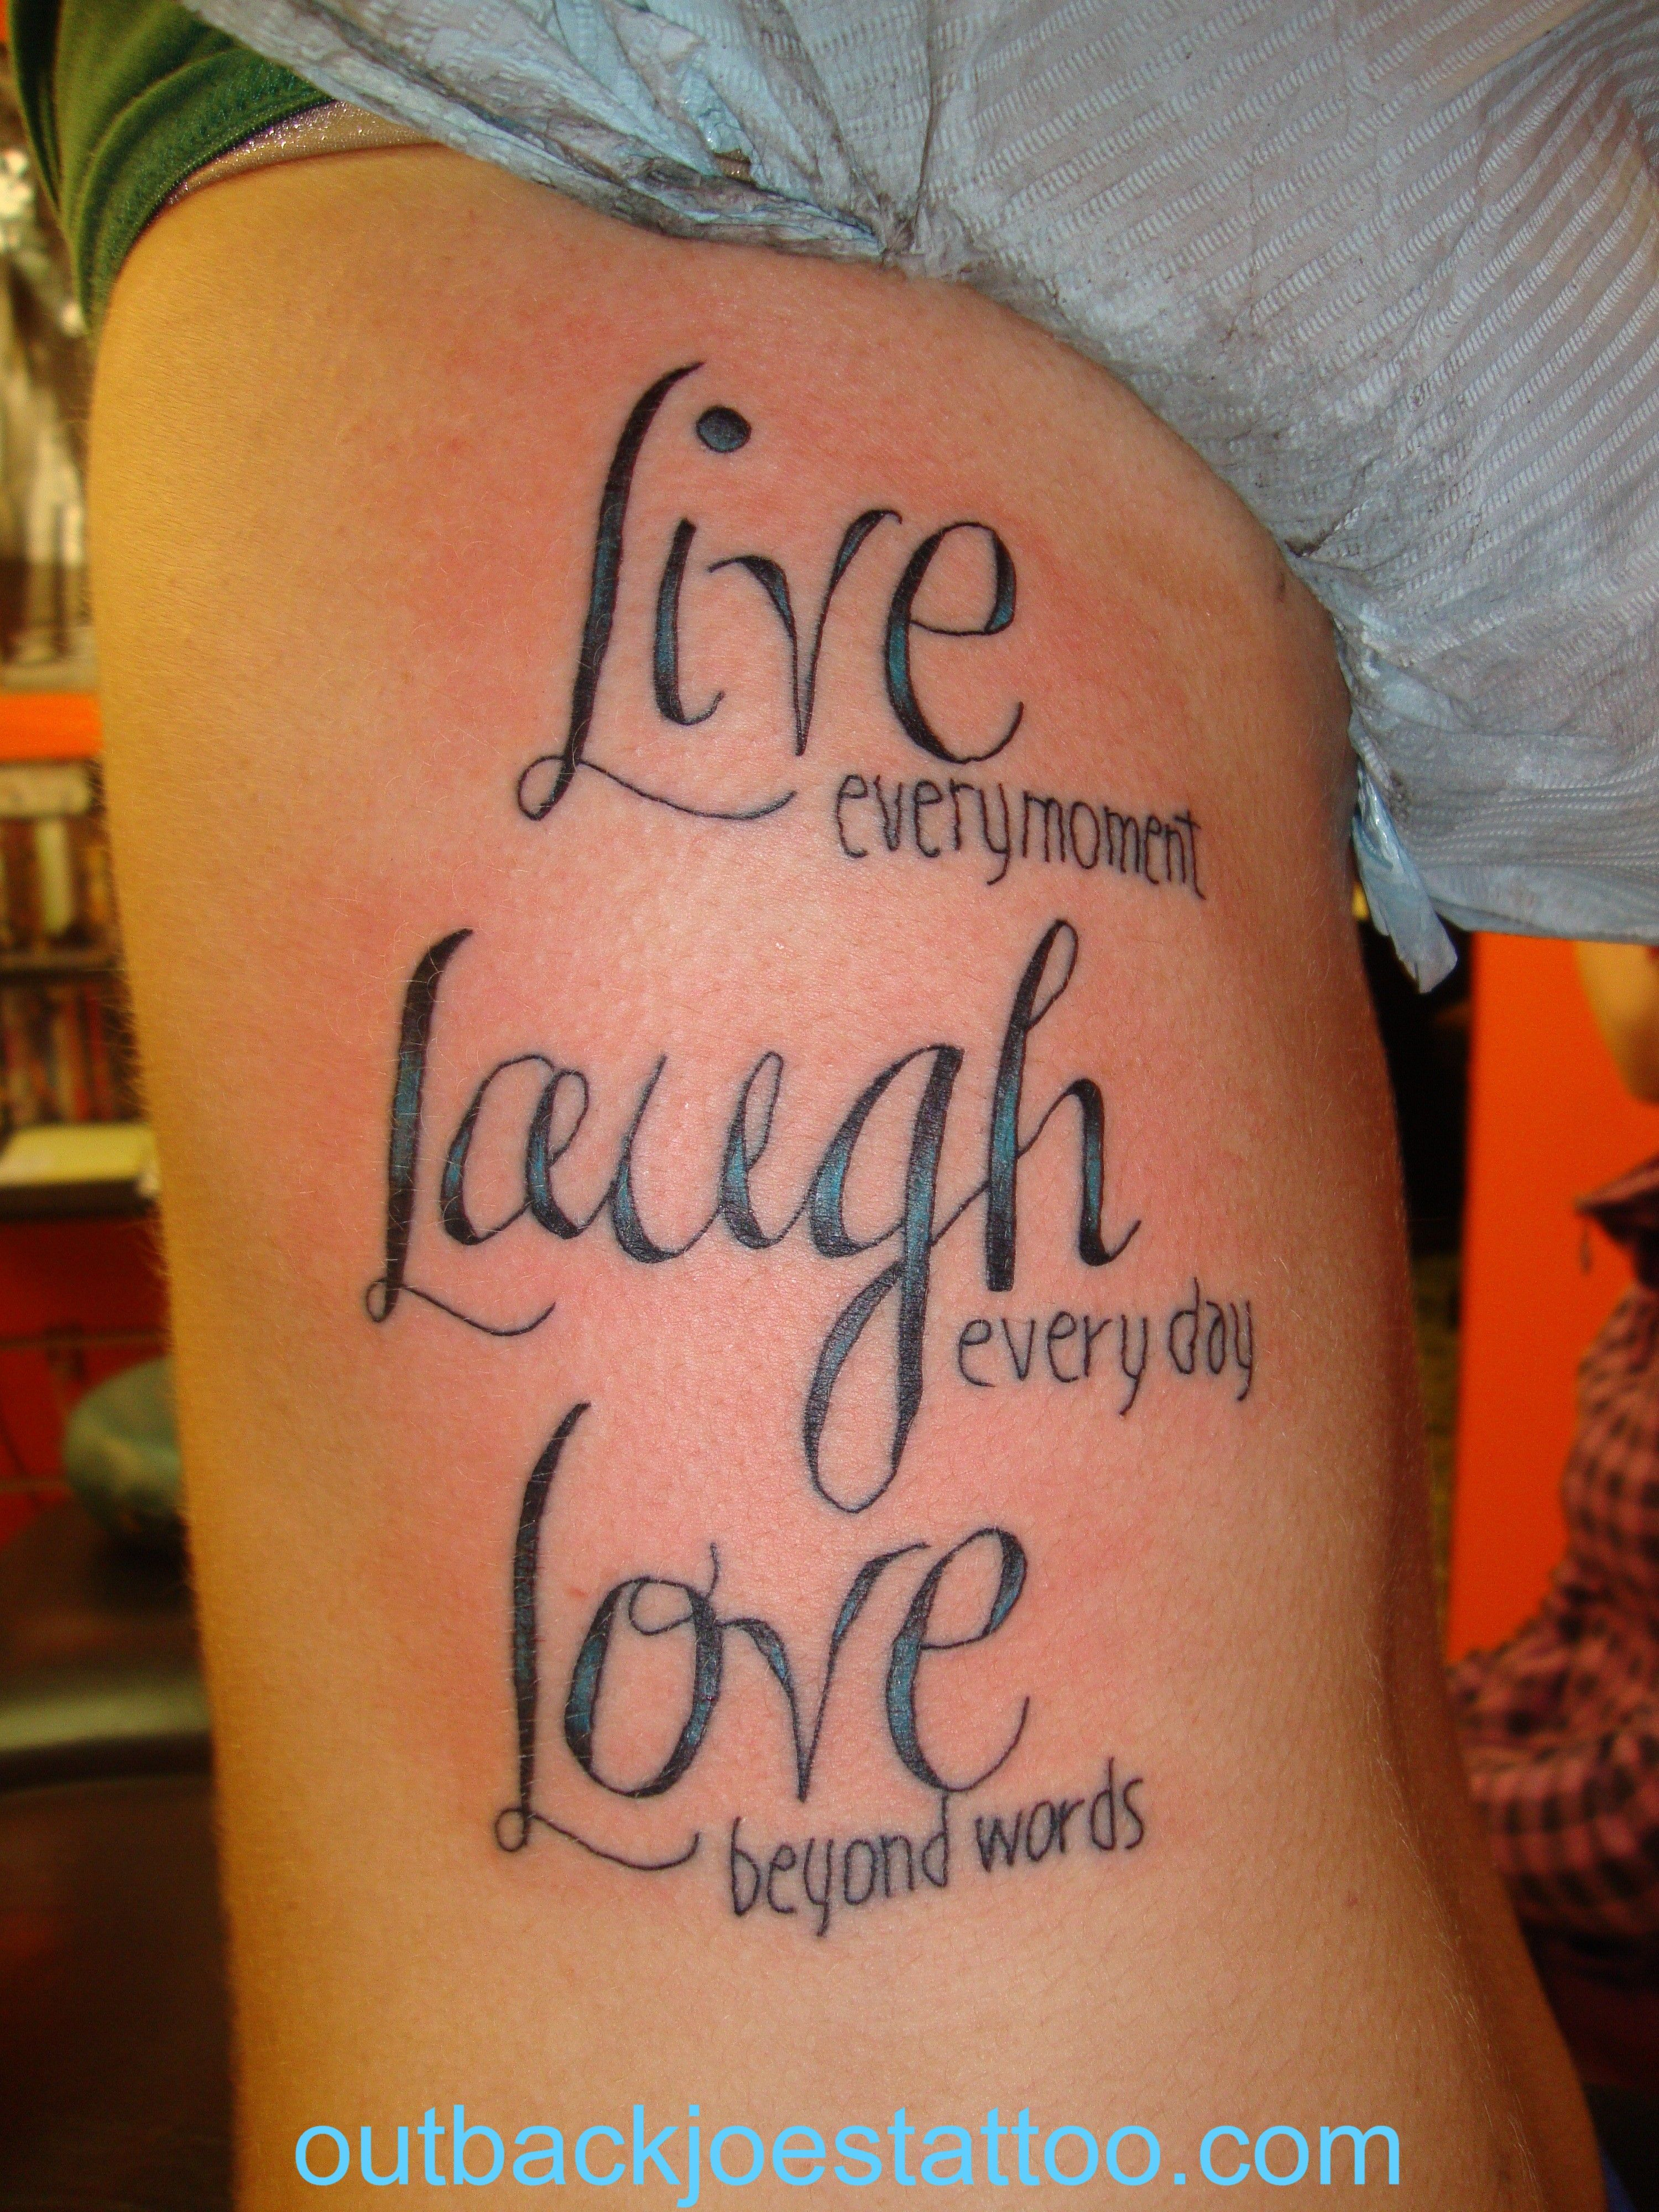 50 meaningful tattoo ideas art and design - Girl Harley Tattoo Pics Pin Free Download Live Laugh Love Tattoos Design 30260 With Resolution